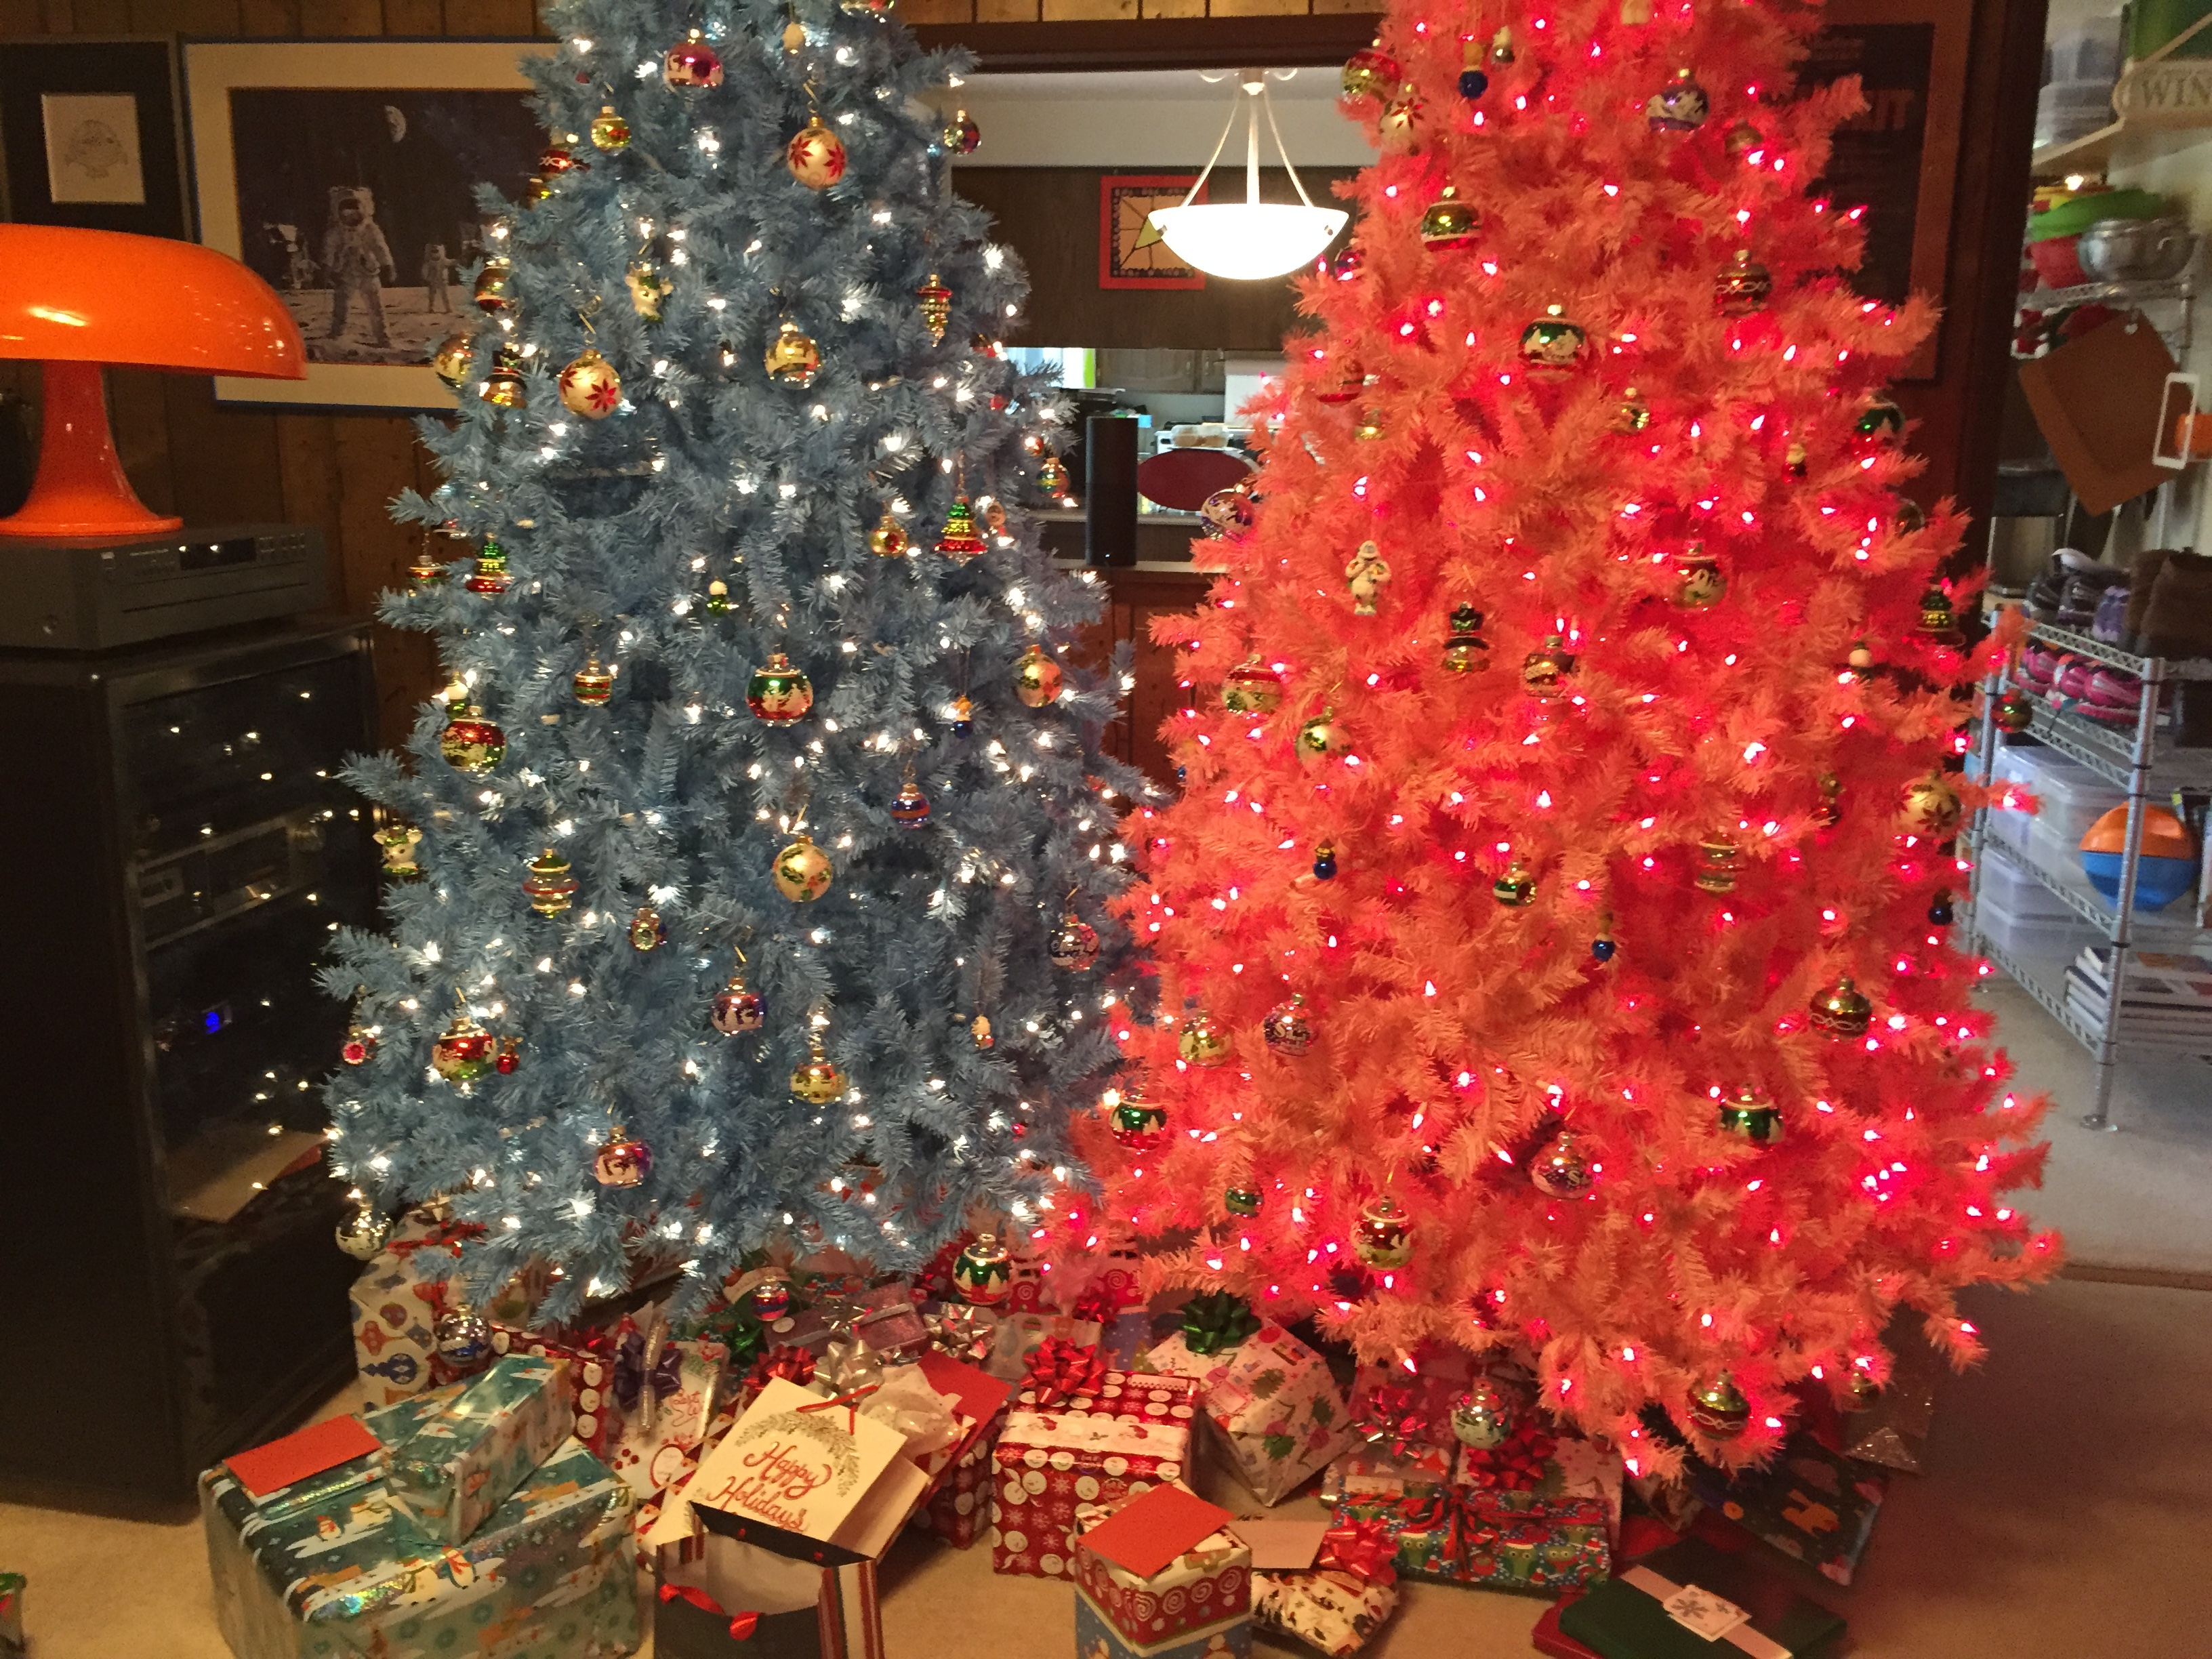 Chick Flick the Musical Christmas Trees 2015 LANDSCAPE